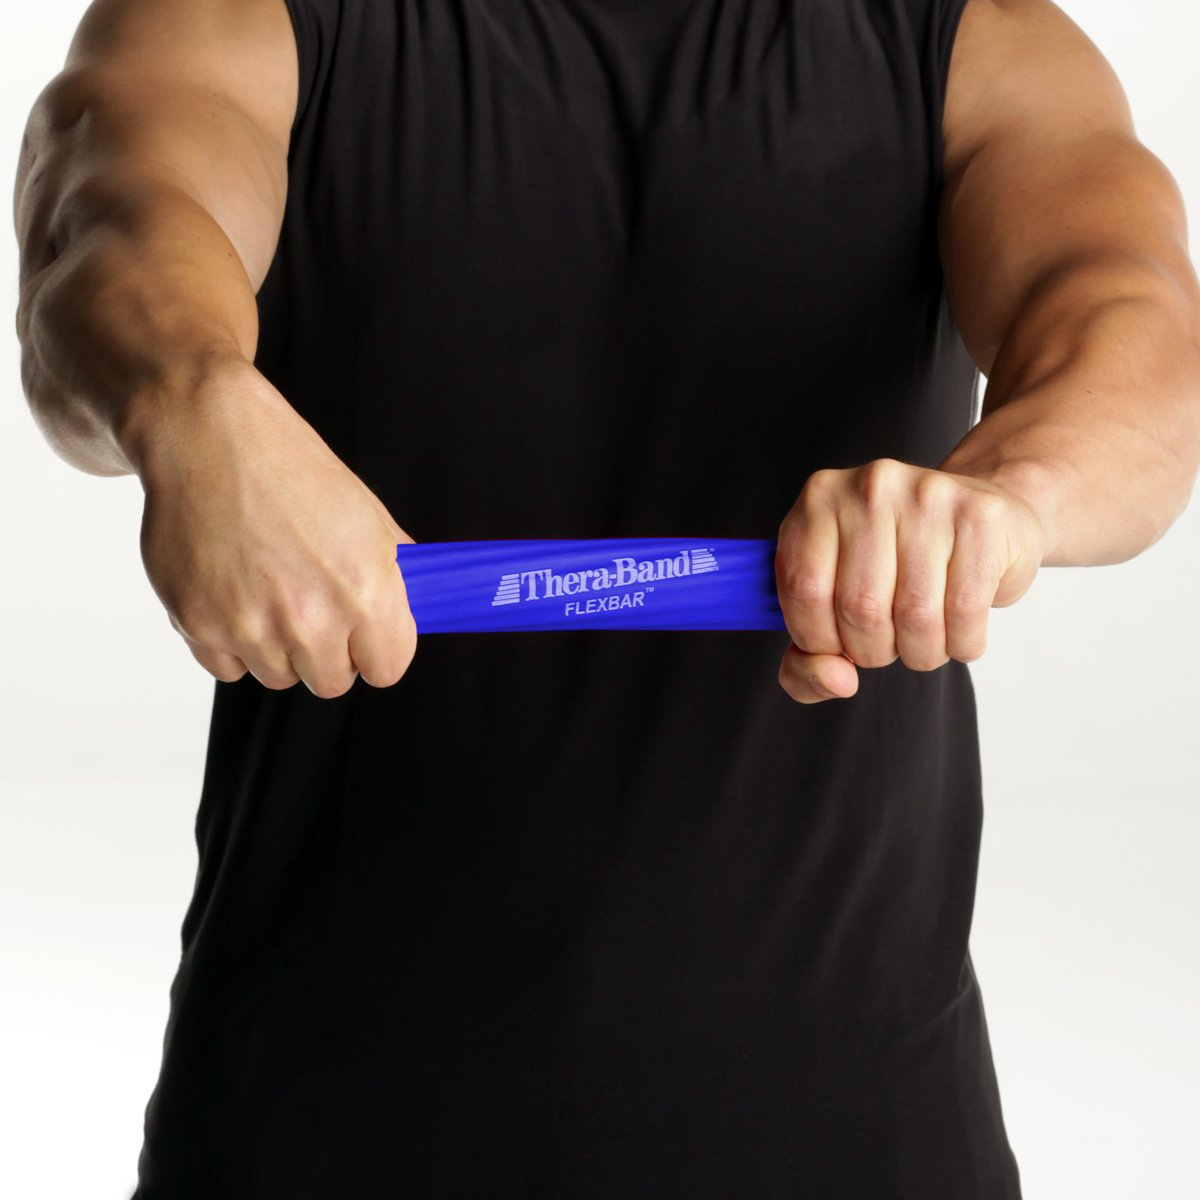 TheraBand FlexBar, Tennis Elbow Therapy Bar, Relieve Tendonitis Pain & Improve Grip Strength, Resistance Bar for Golfers Elbow & Tendinitis, Blue, Heavy, Advanced by TheraBand (Image #4)